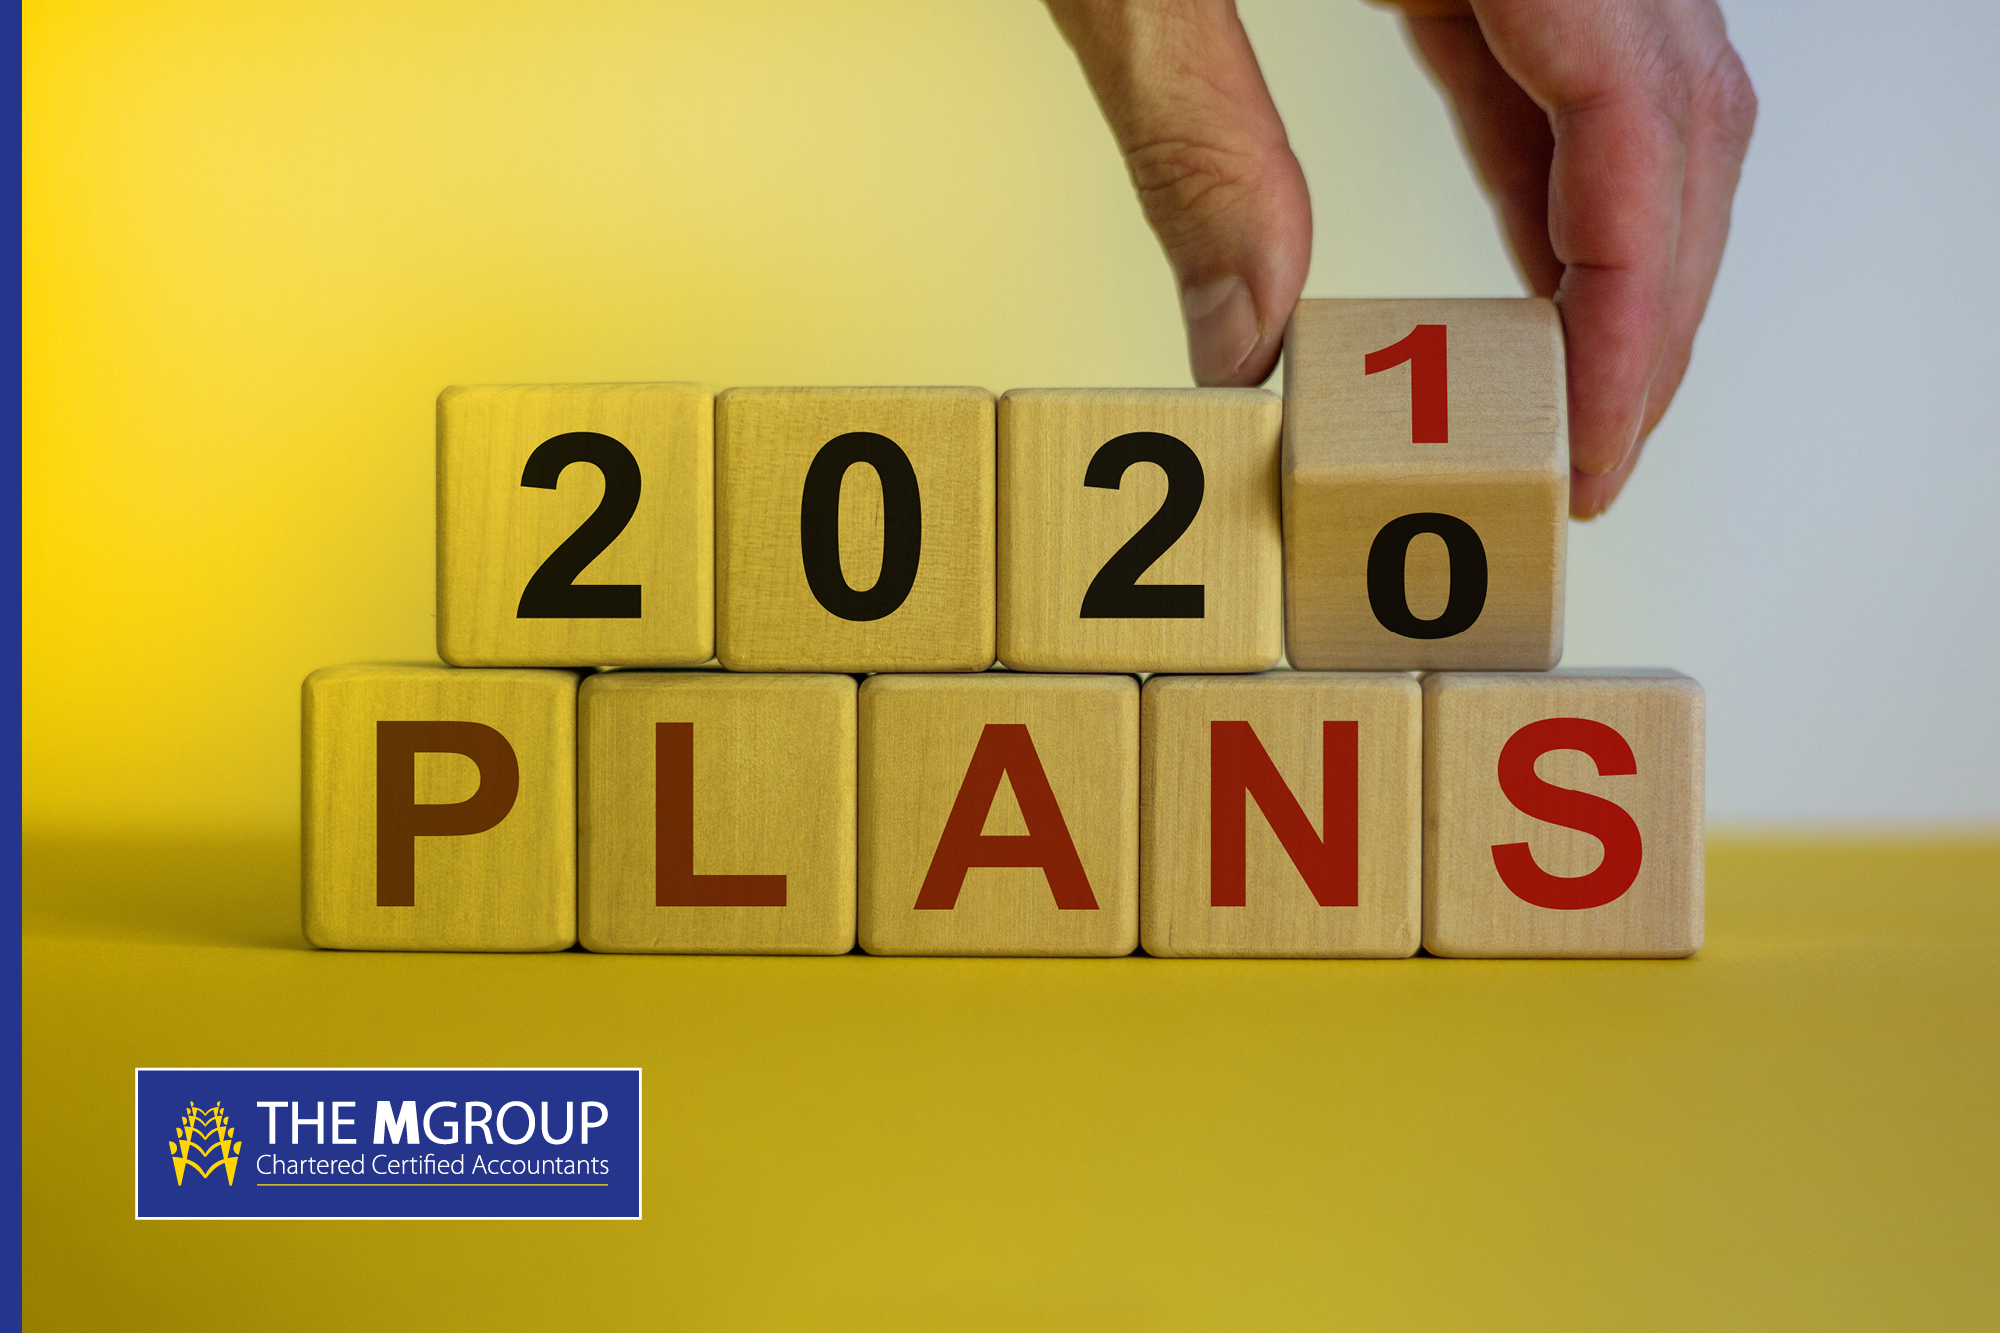 Image of 2021 Plans in Red